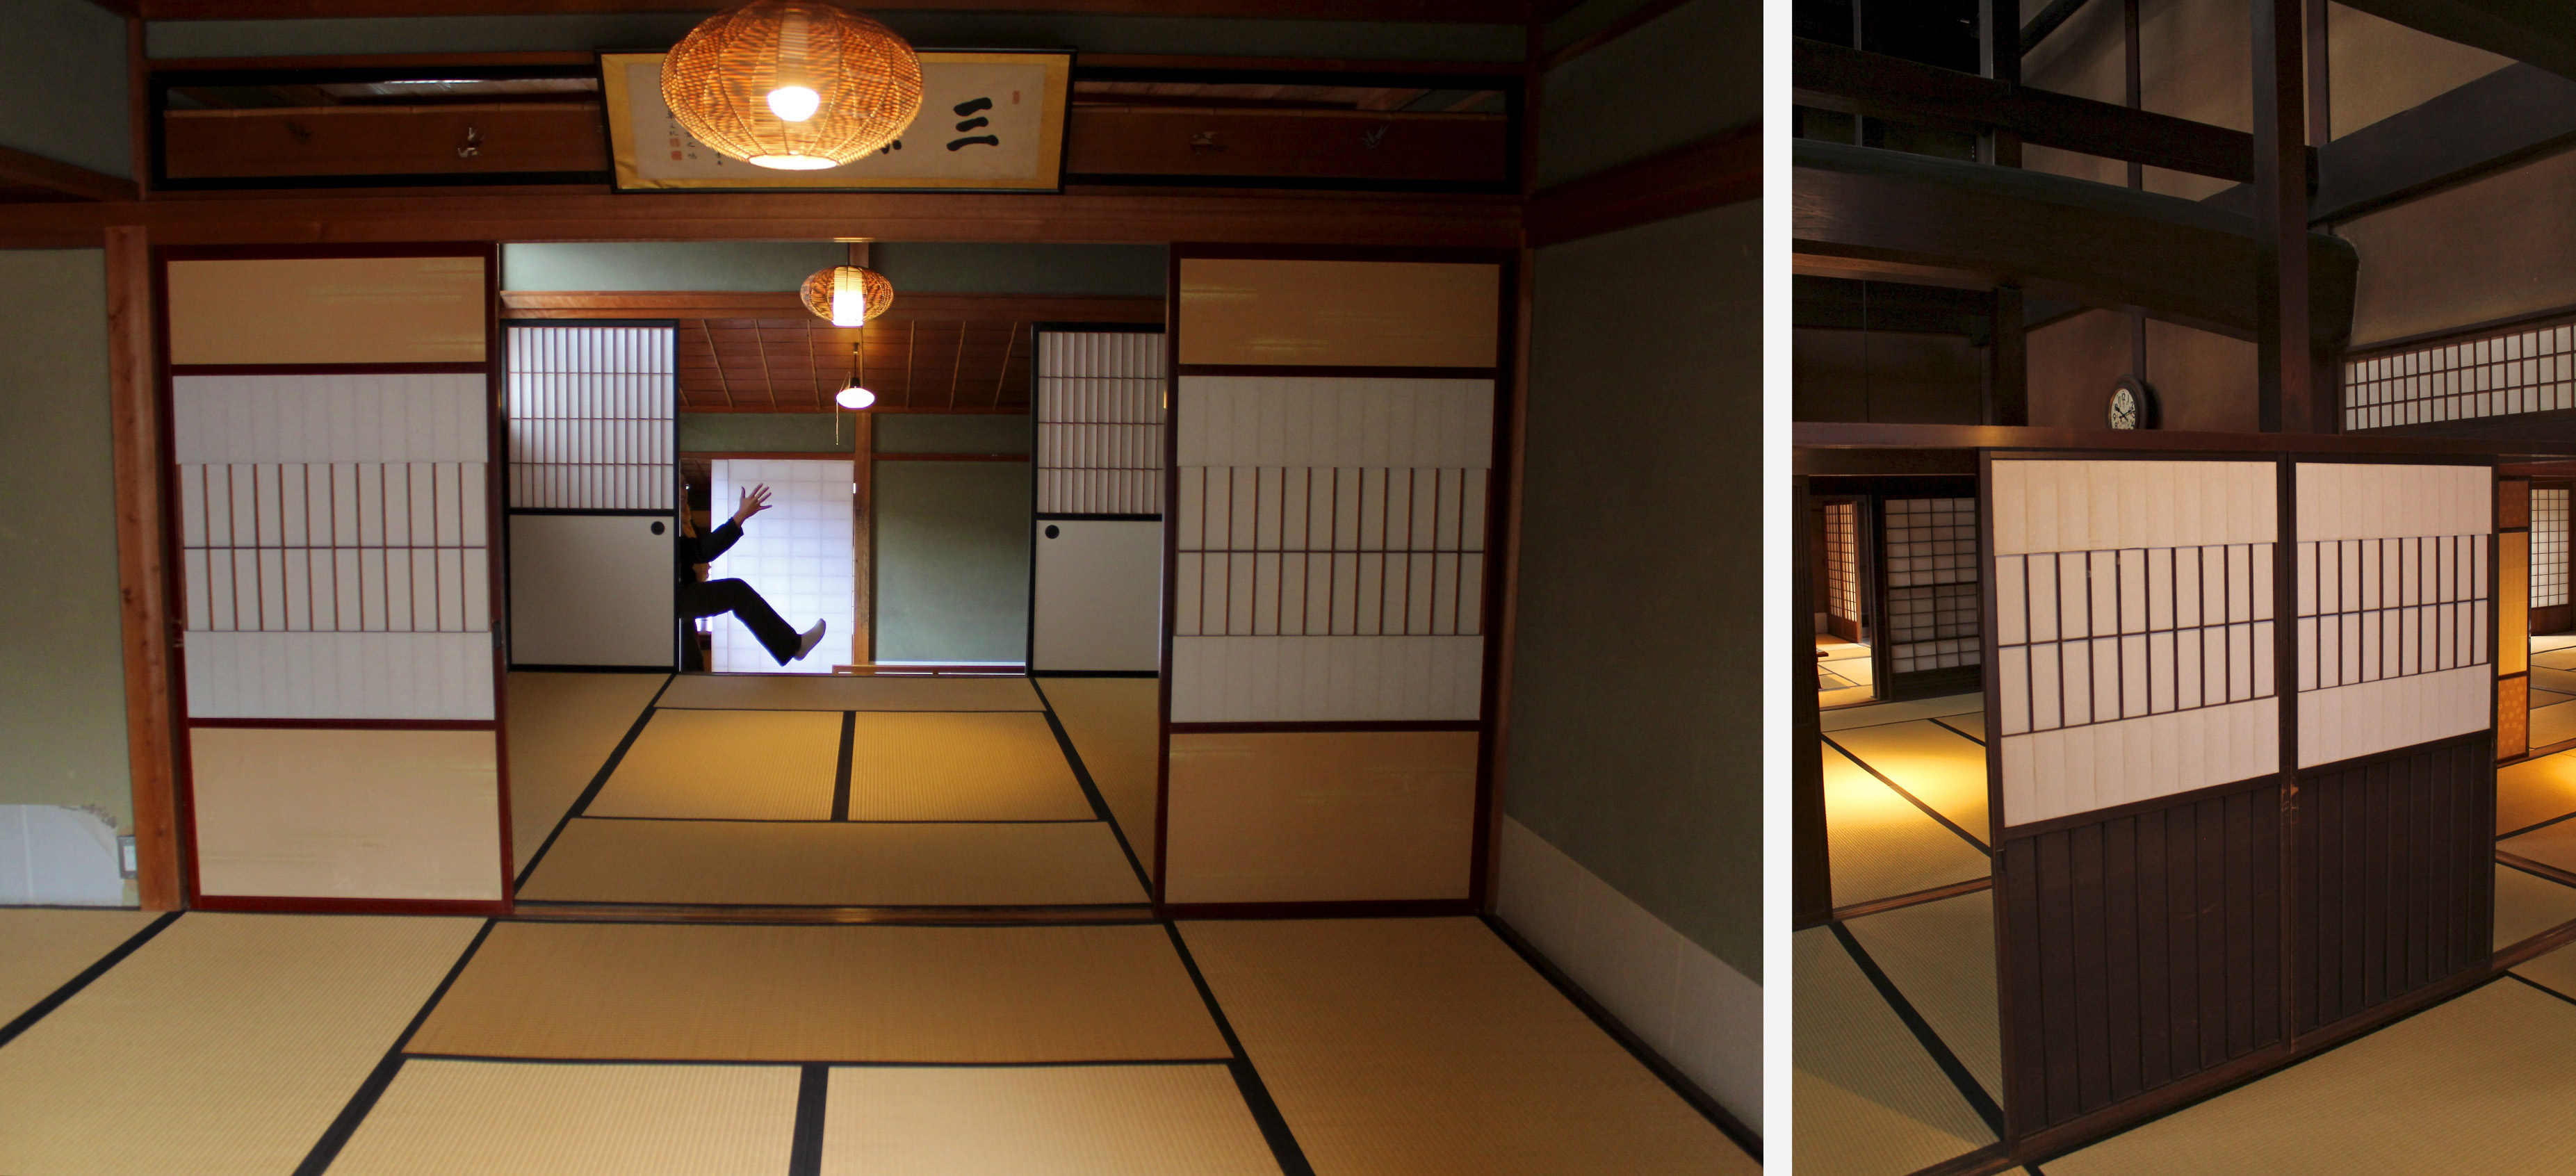 Maison traditionnelle yoshijima ke takayama for Salle de bain japon